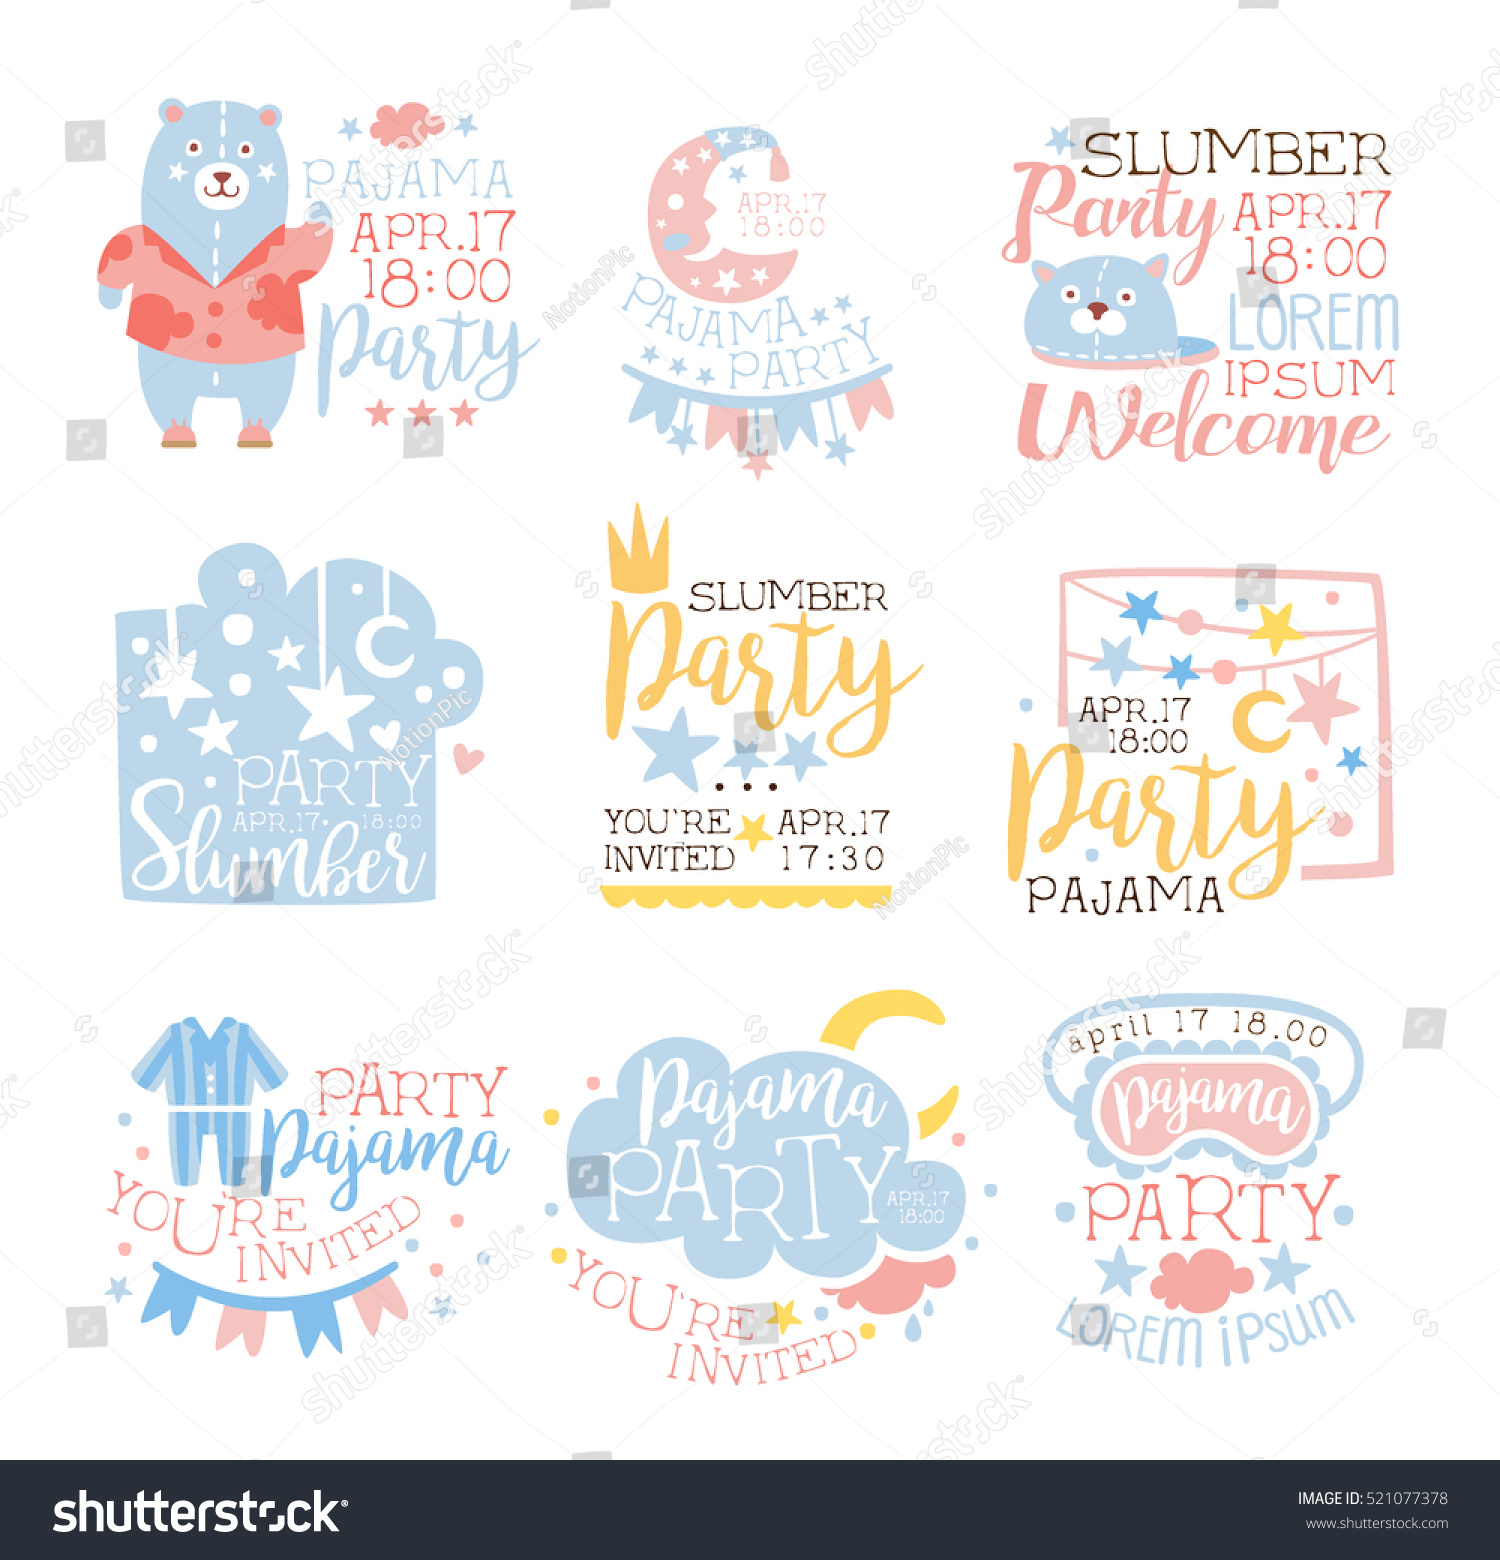 Blue Pink Girly Pajama Party Invitation Stock Vector (Royalty Free ...